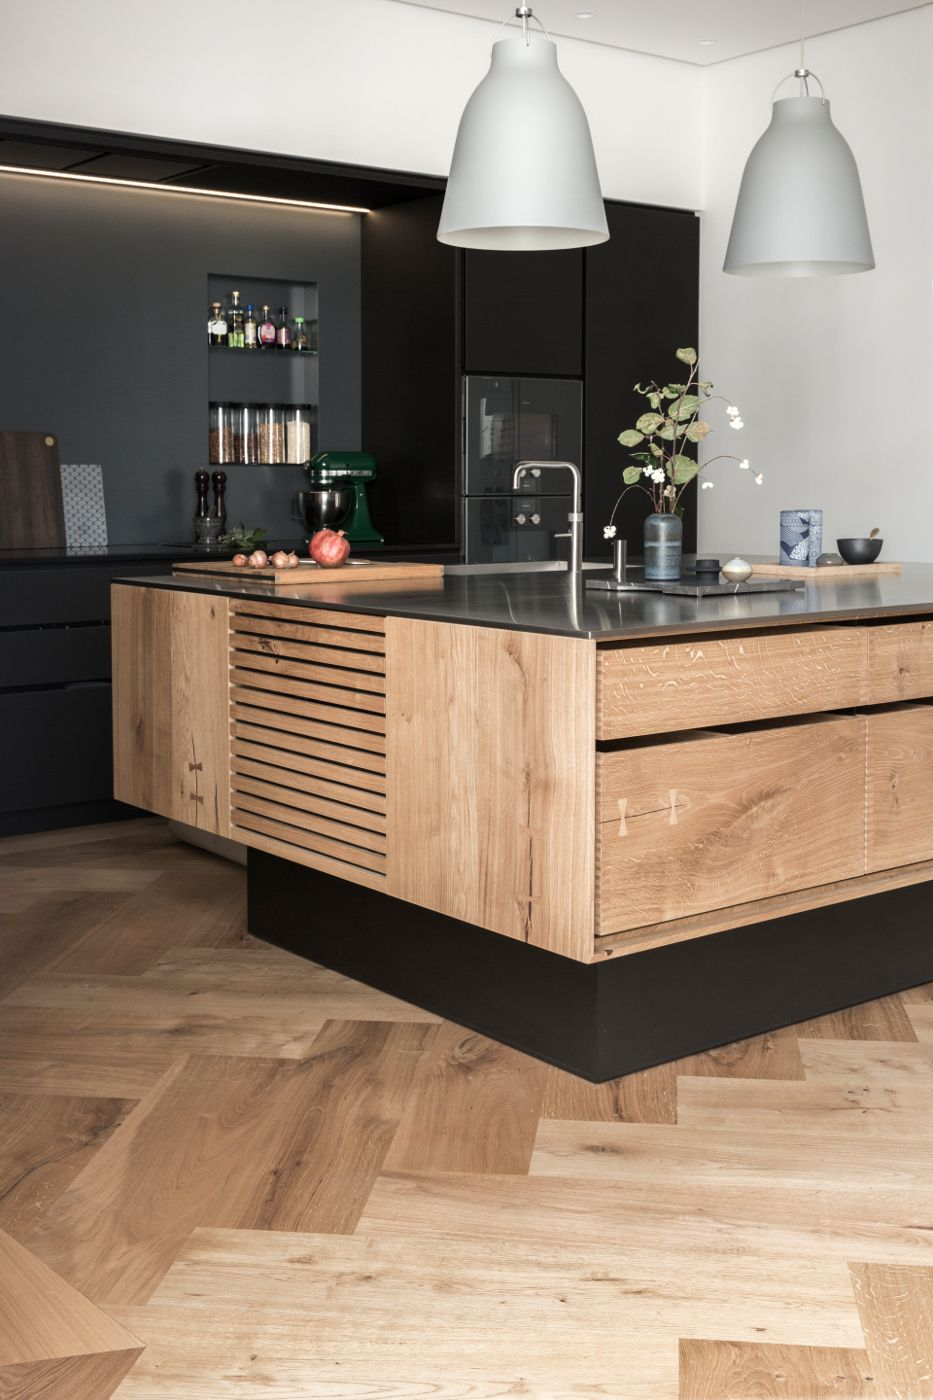 Model Dinesen kitchen island and linoleum tall cabinets - Garde Hvalsøe A/S (en ...